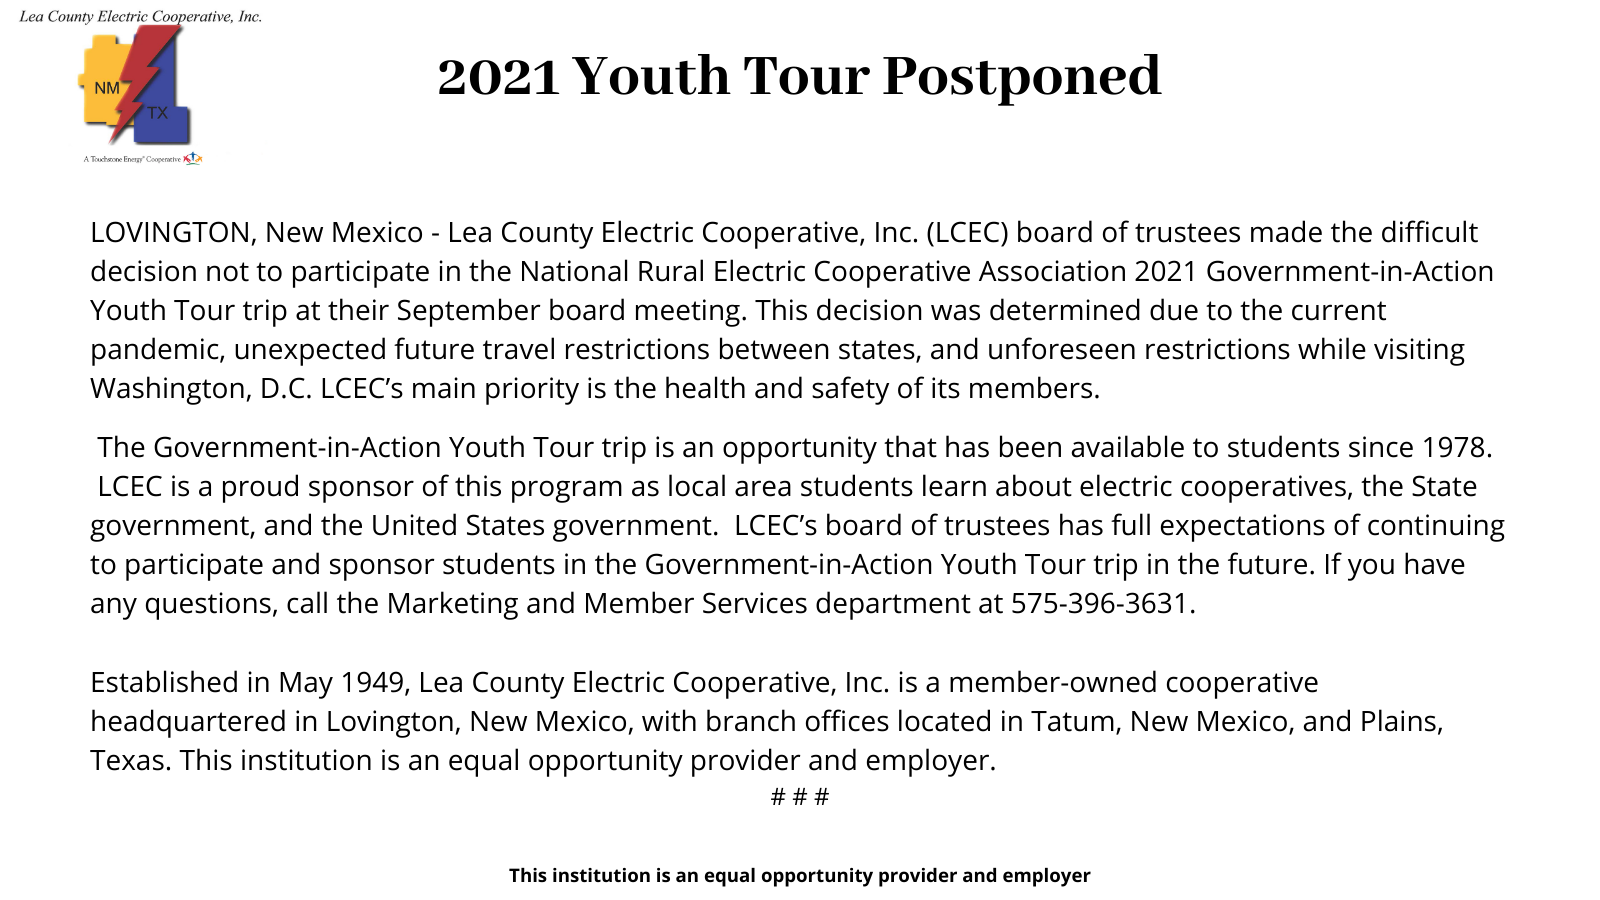 2021 Youth Tour postponed